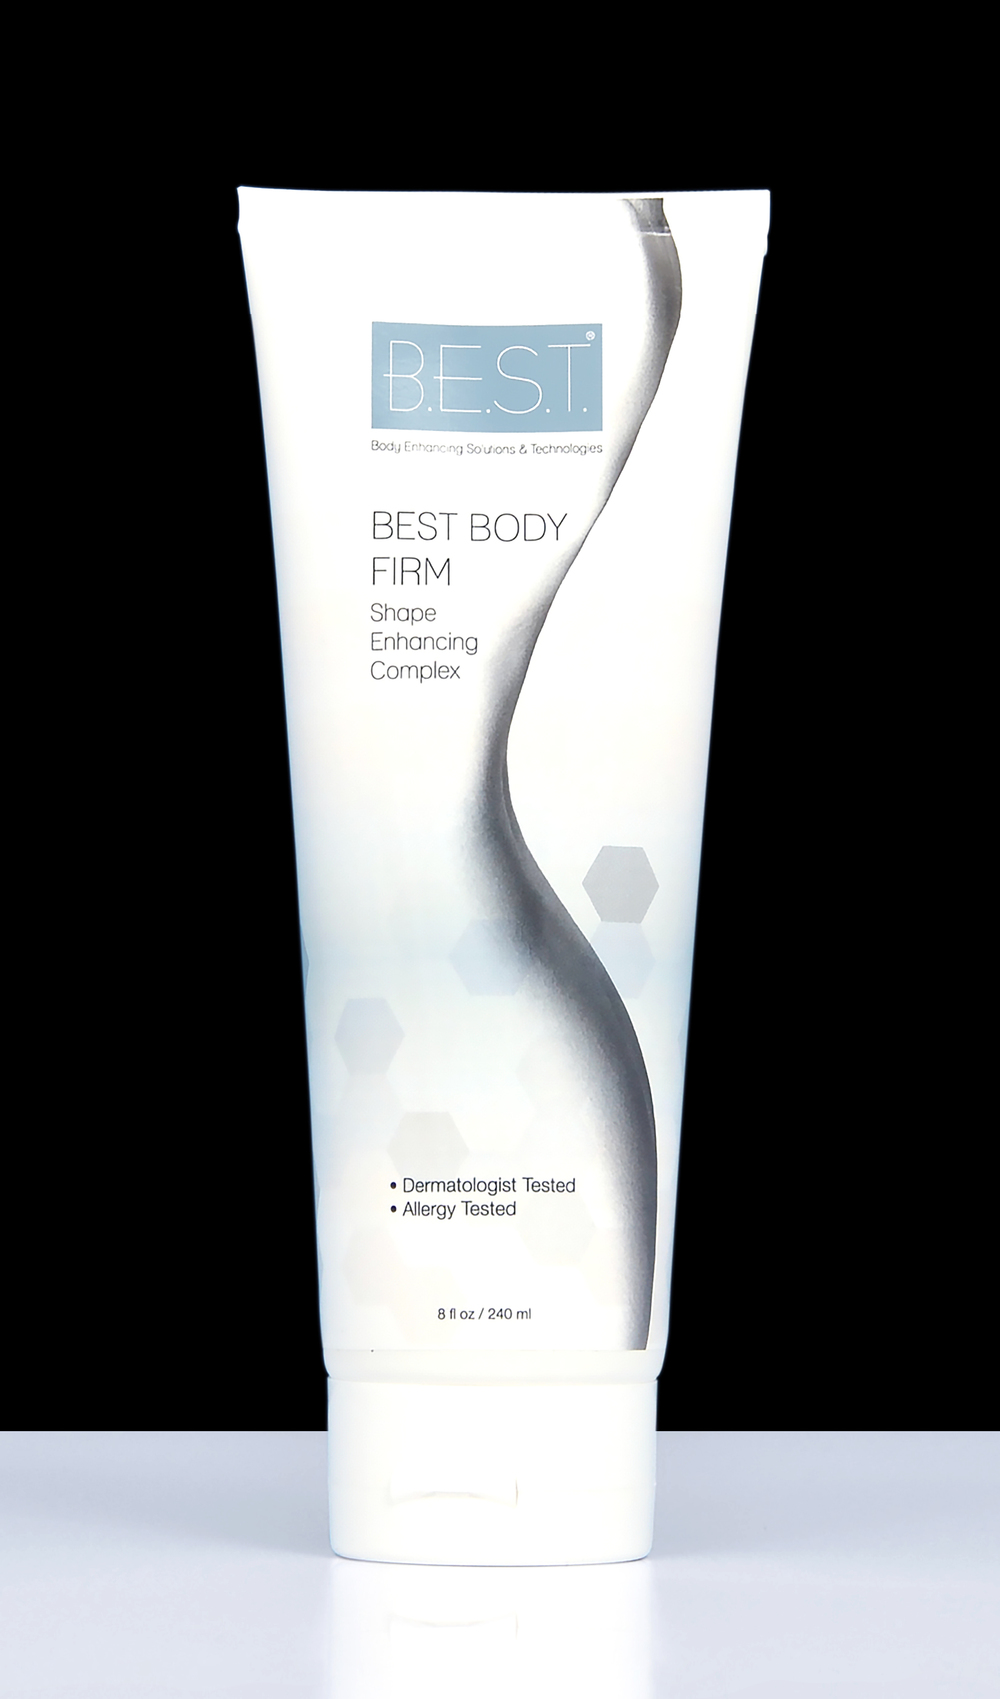 BEST Body Firm